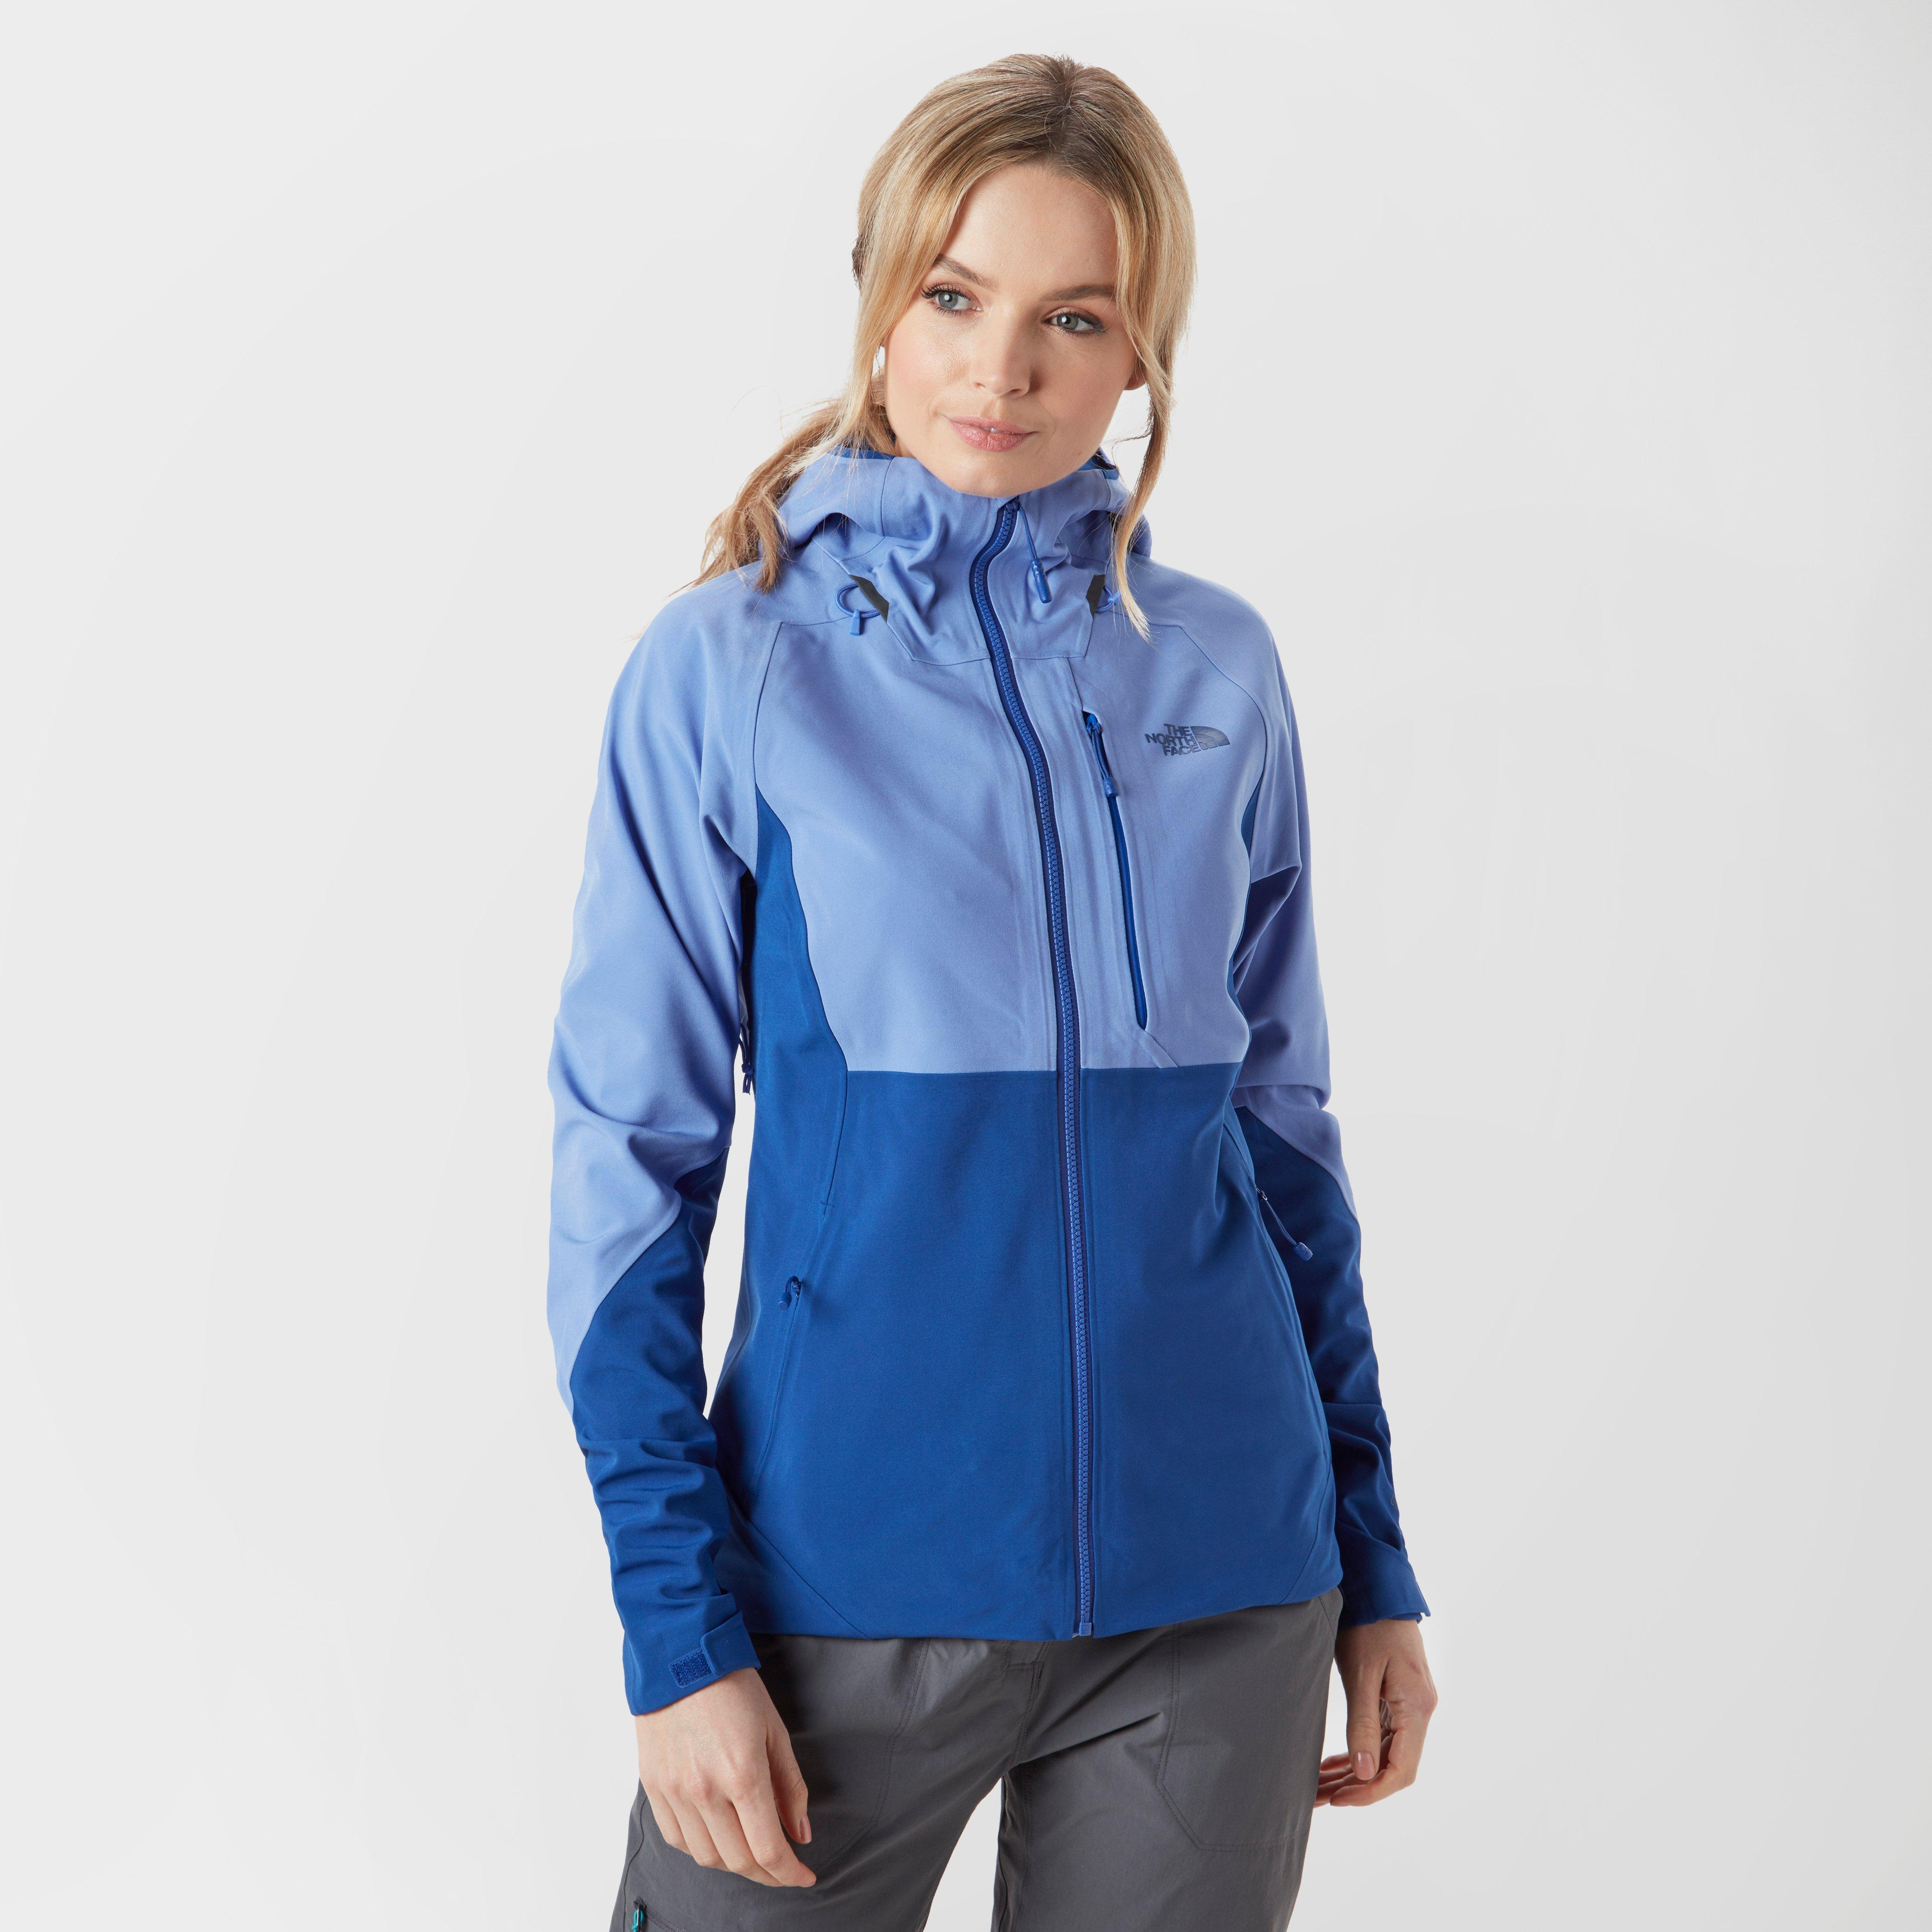 7ee8751150c THE NORTH FACE Women s Apex Flex GORE-TEX® 2.0 Softshell Jacket image 1